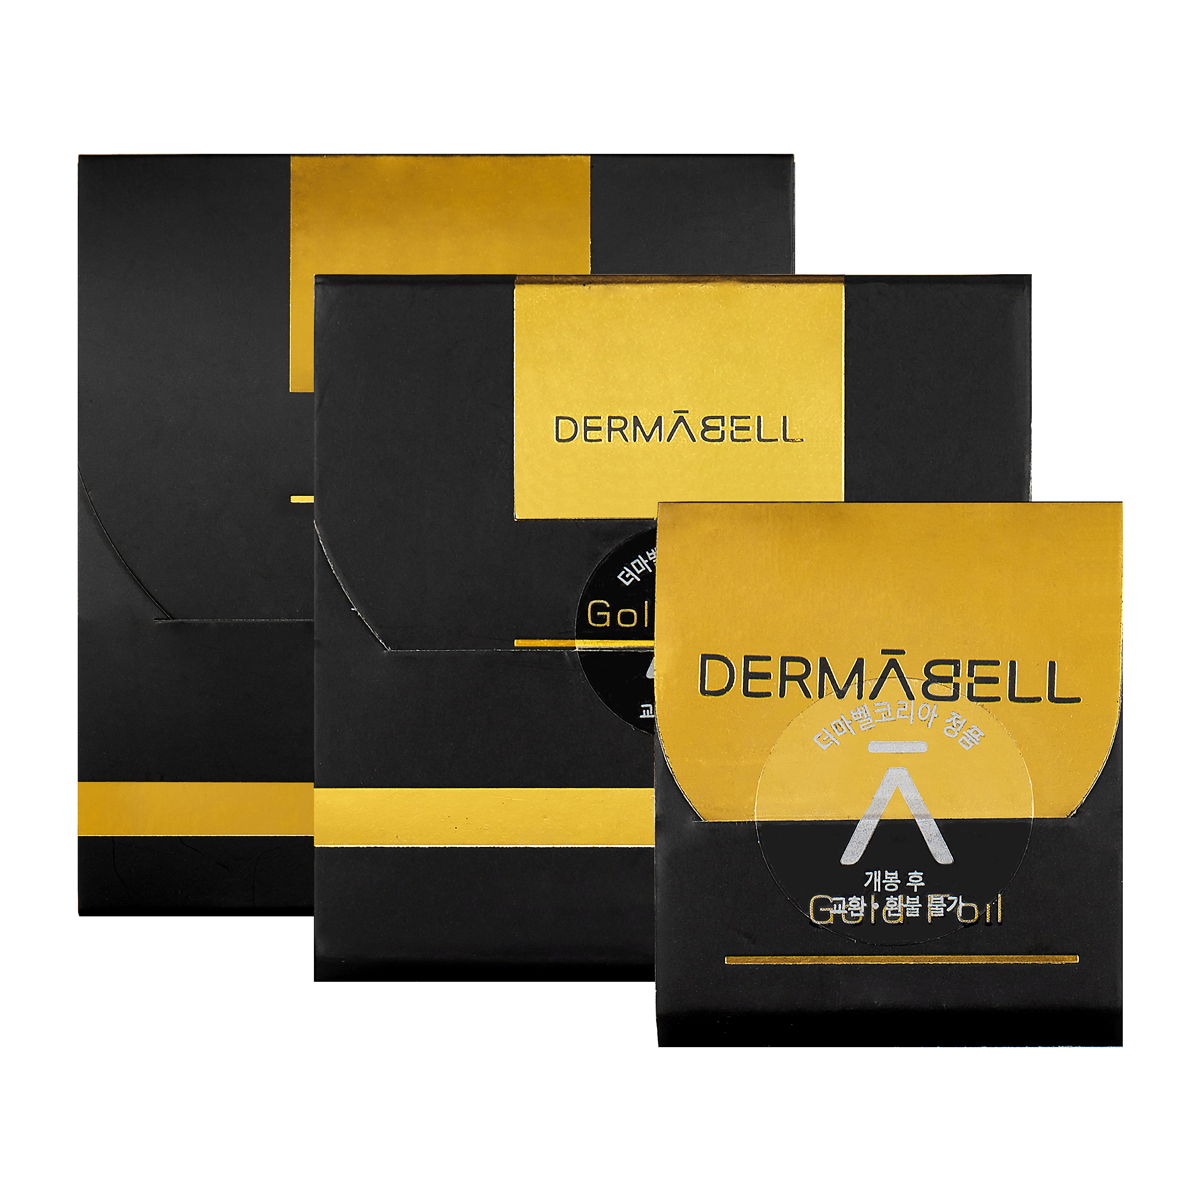 Allure Gold Therapy Set Ver.2 Dermabell Therapy by DERMABELL PRO THERAPY